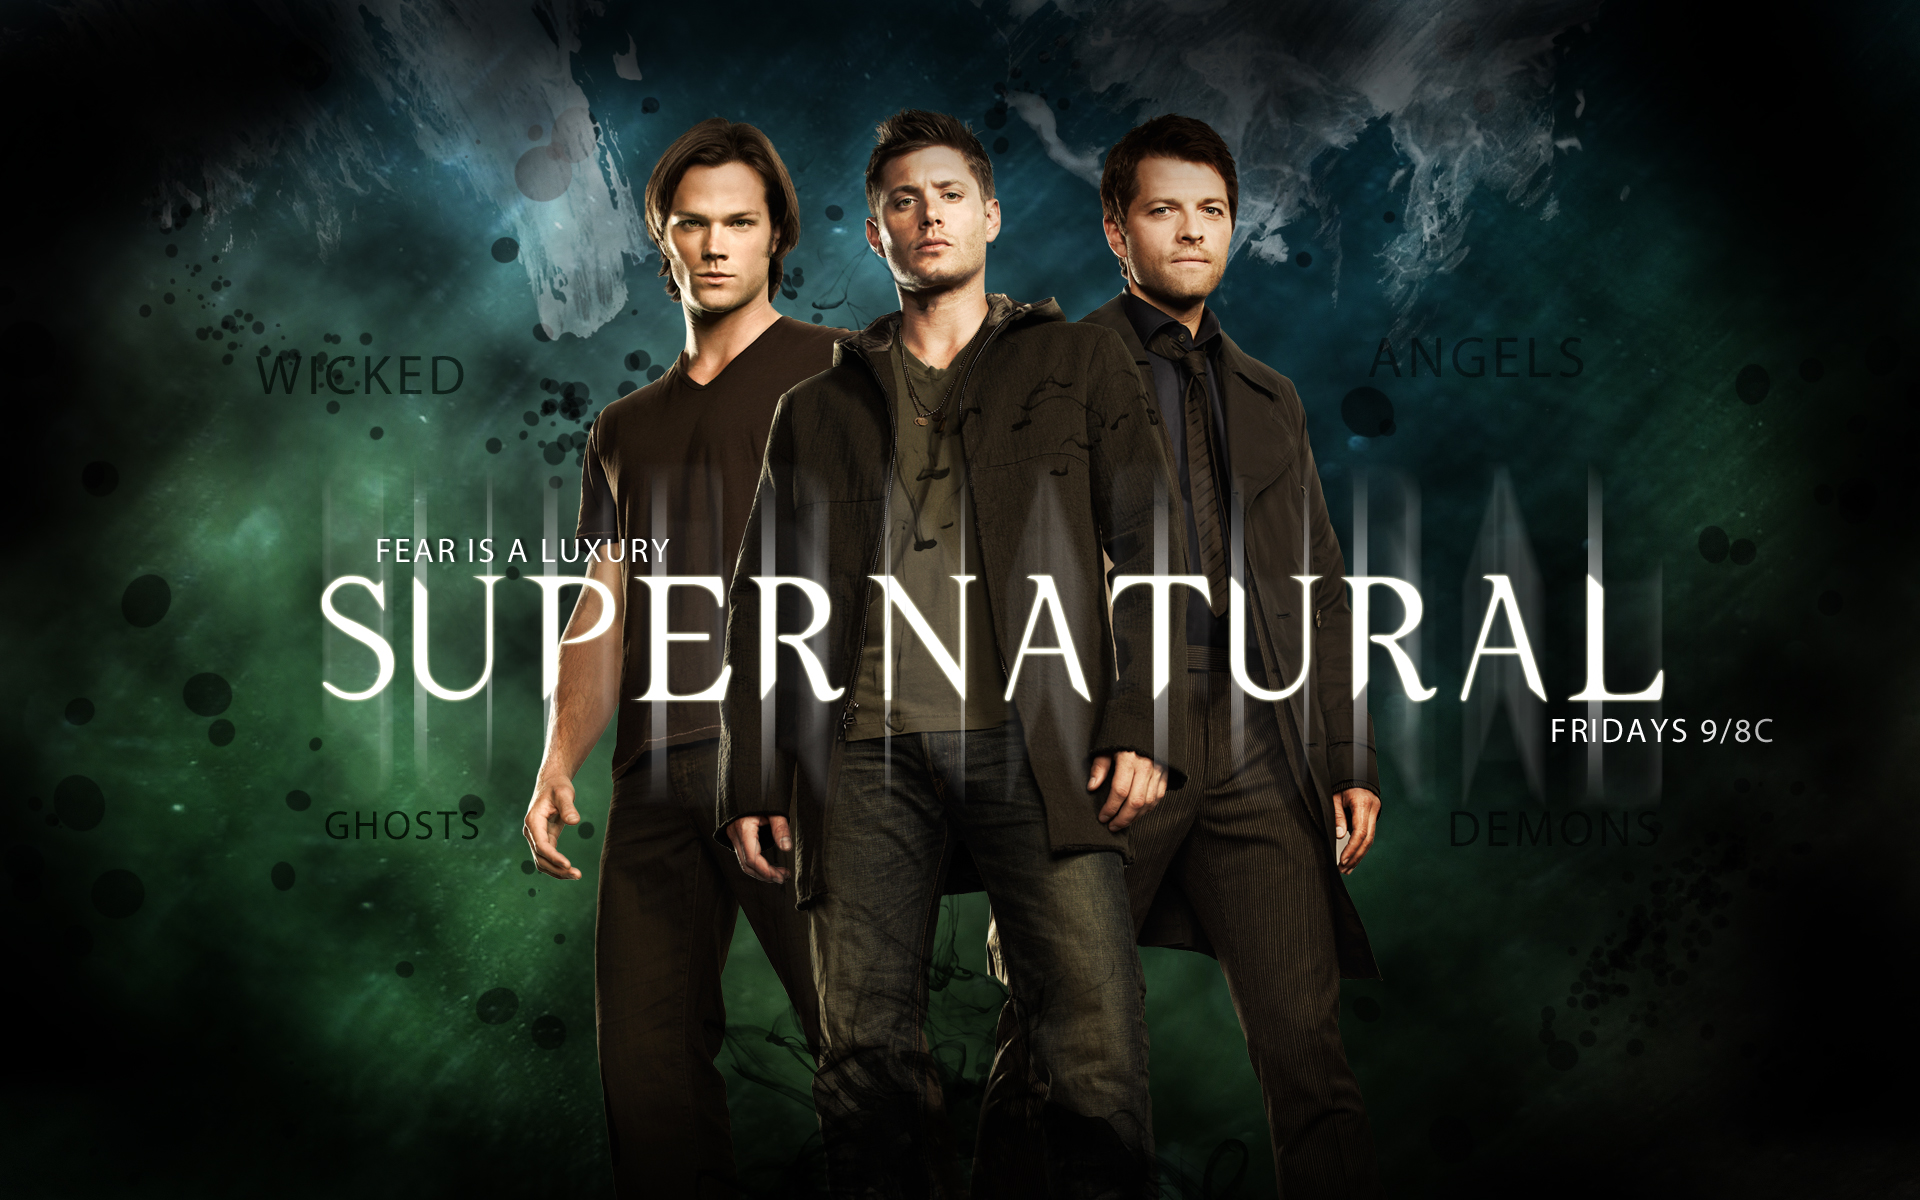 supernatural wallpapers mobile - HD Desktop Wallpapers | 4k HD